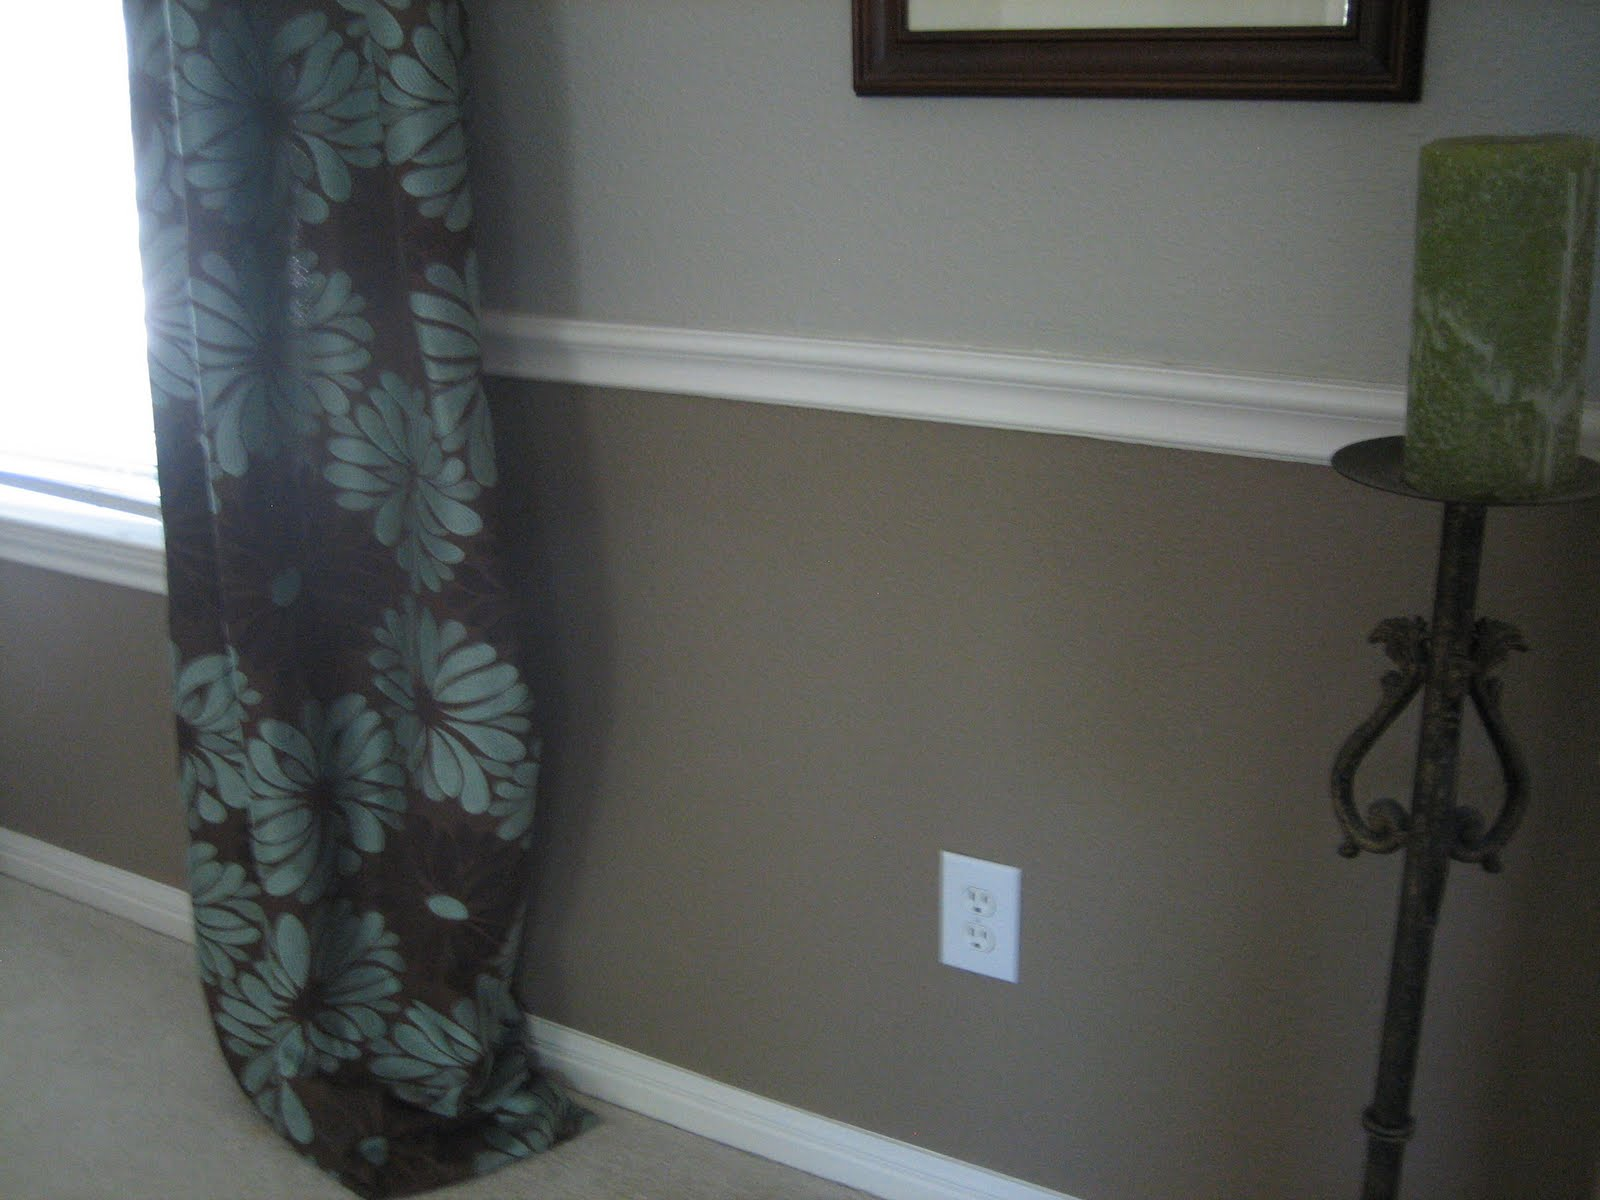 Wainscoting Success (sort of)